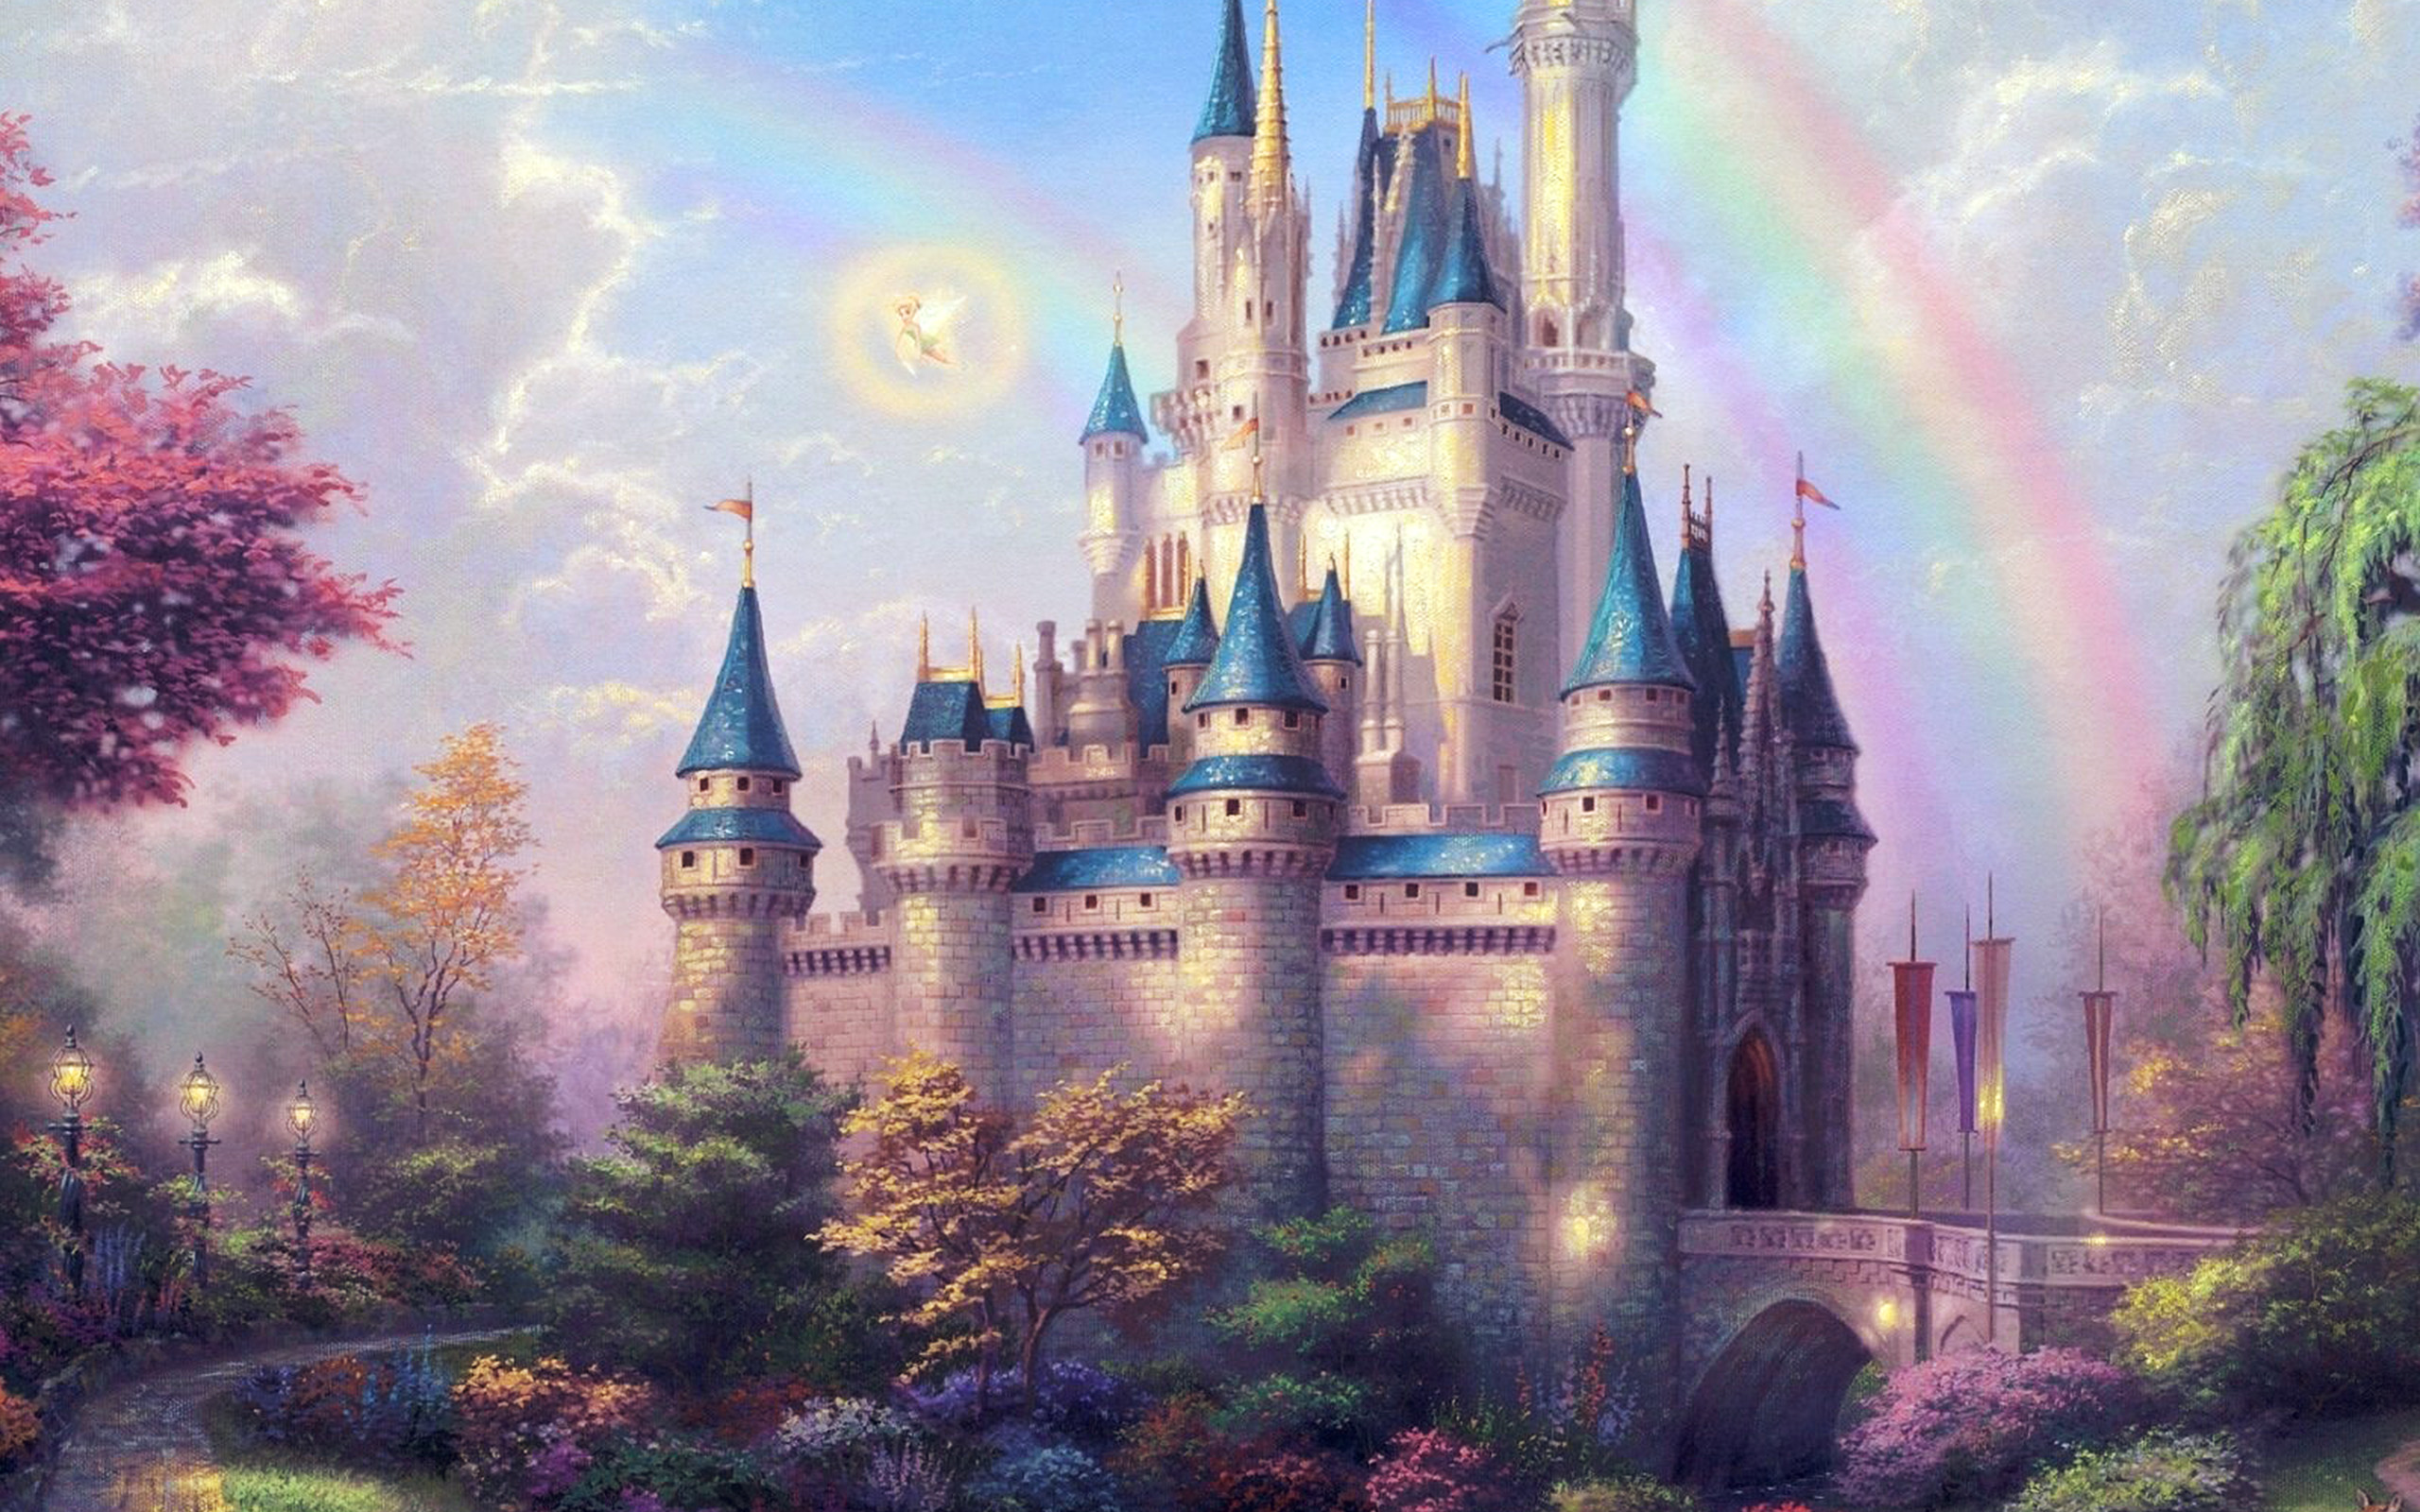 Cute Disney Ipad Wallpaper Ap98 Fantasy Castle Illustration Cute Disney Wallpaper